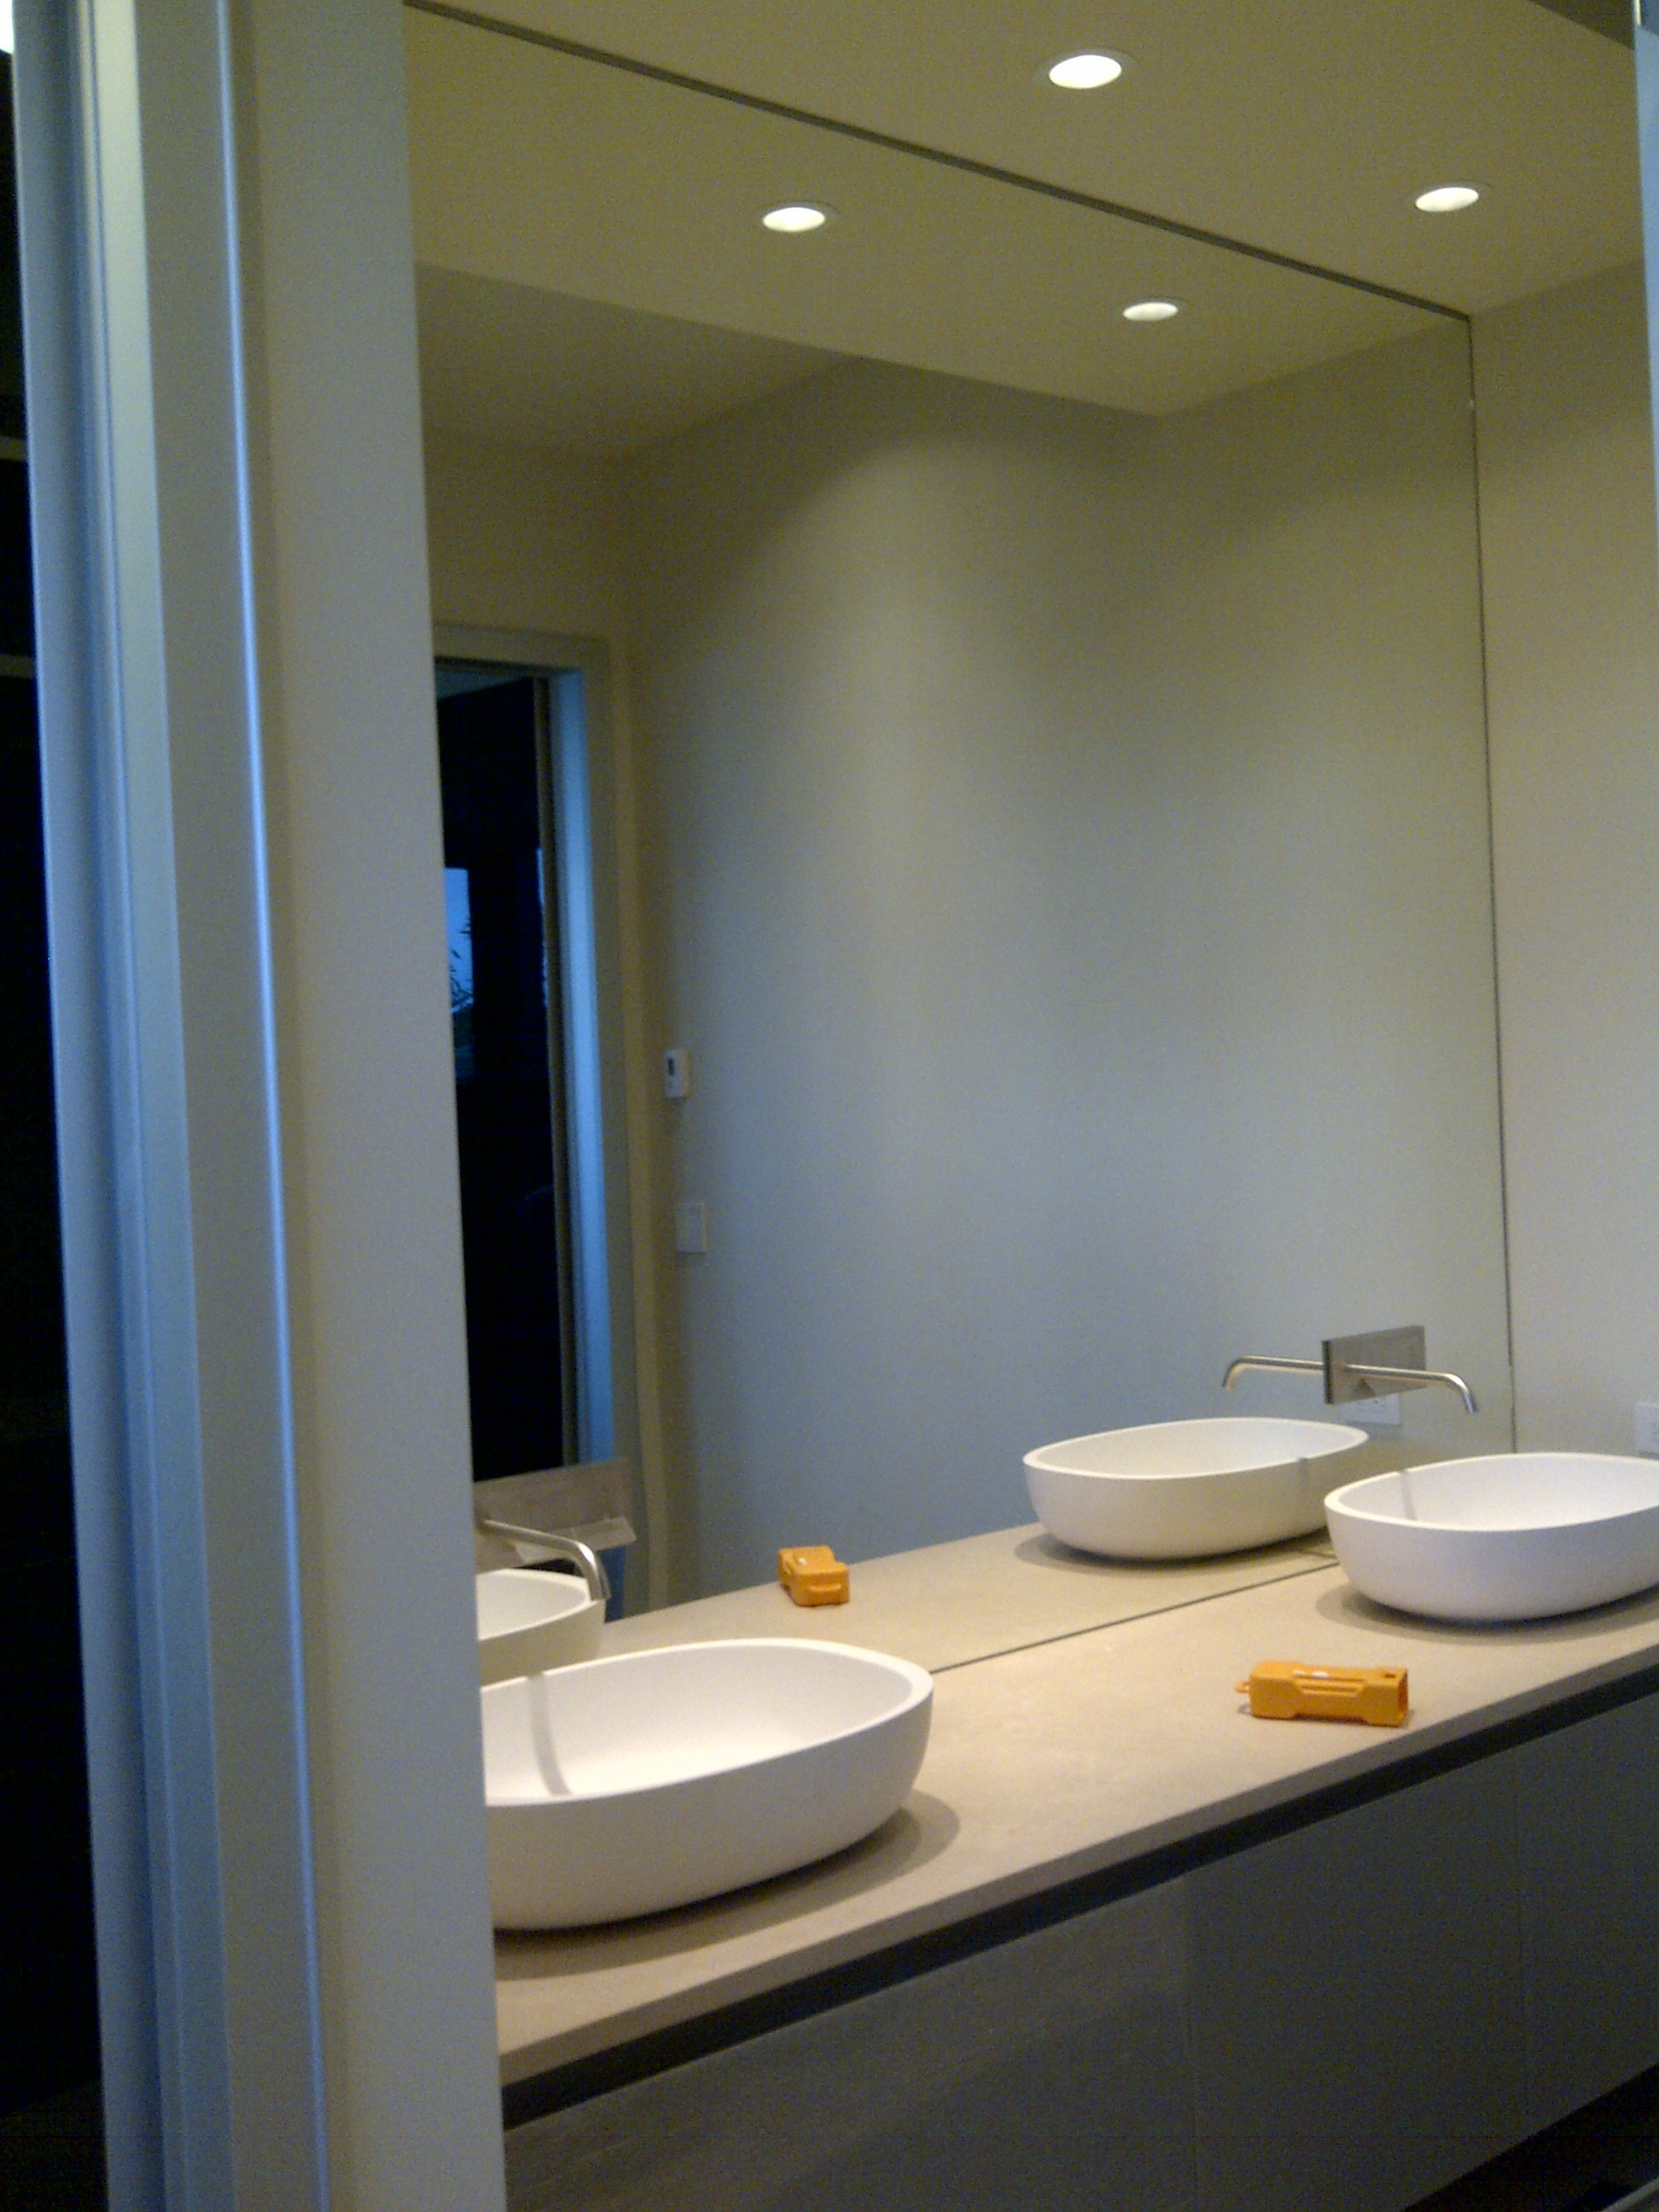 Mirrors repair replace and install in vancouver bc for Large mirrors for bathroom walls